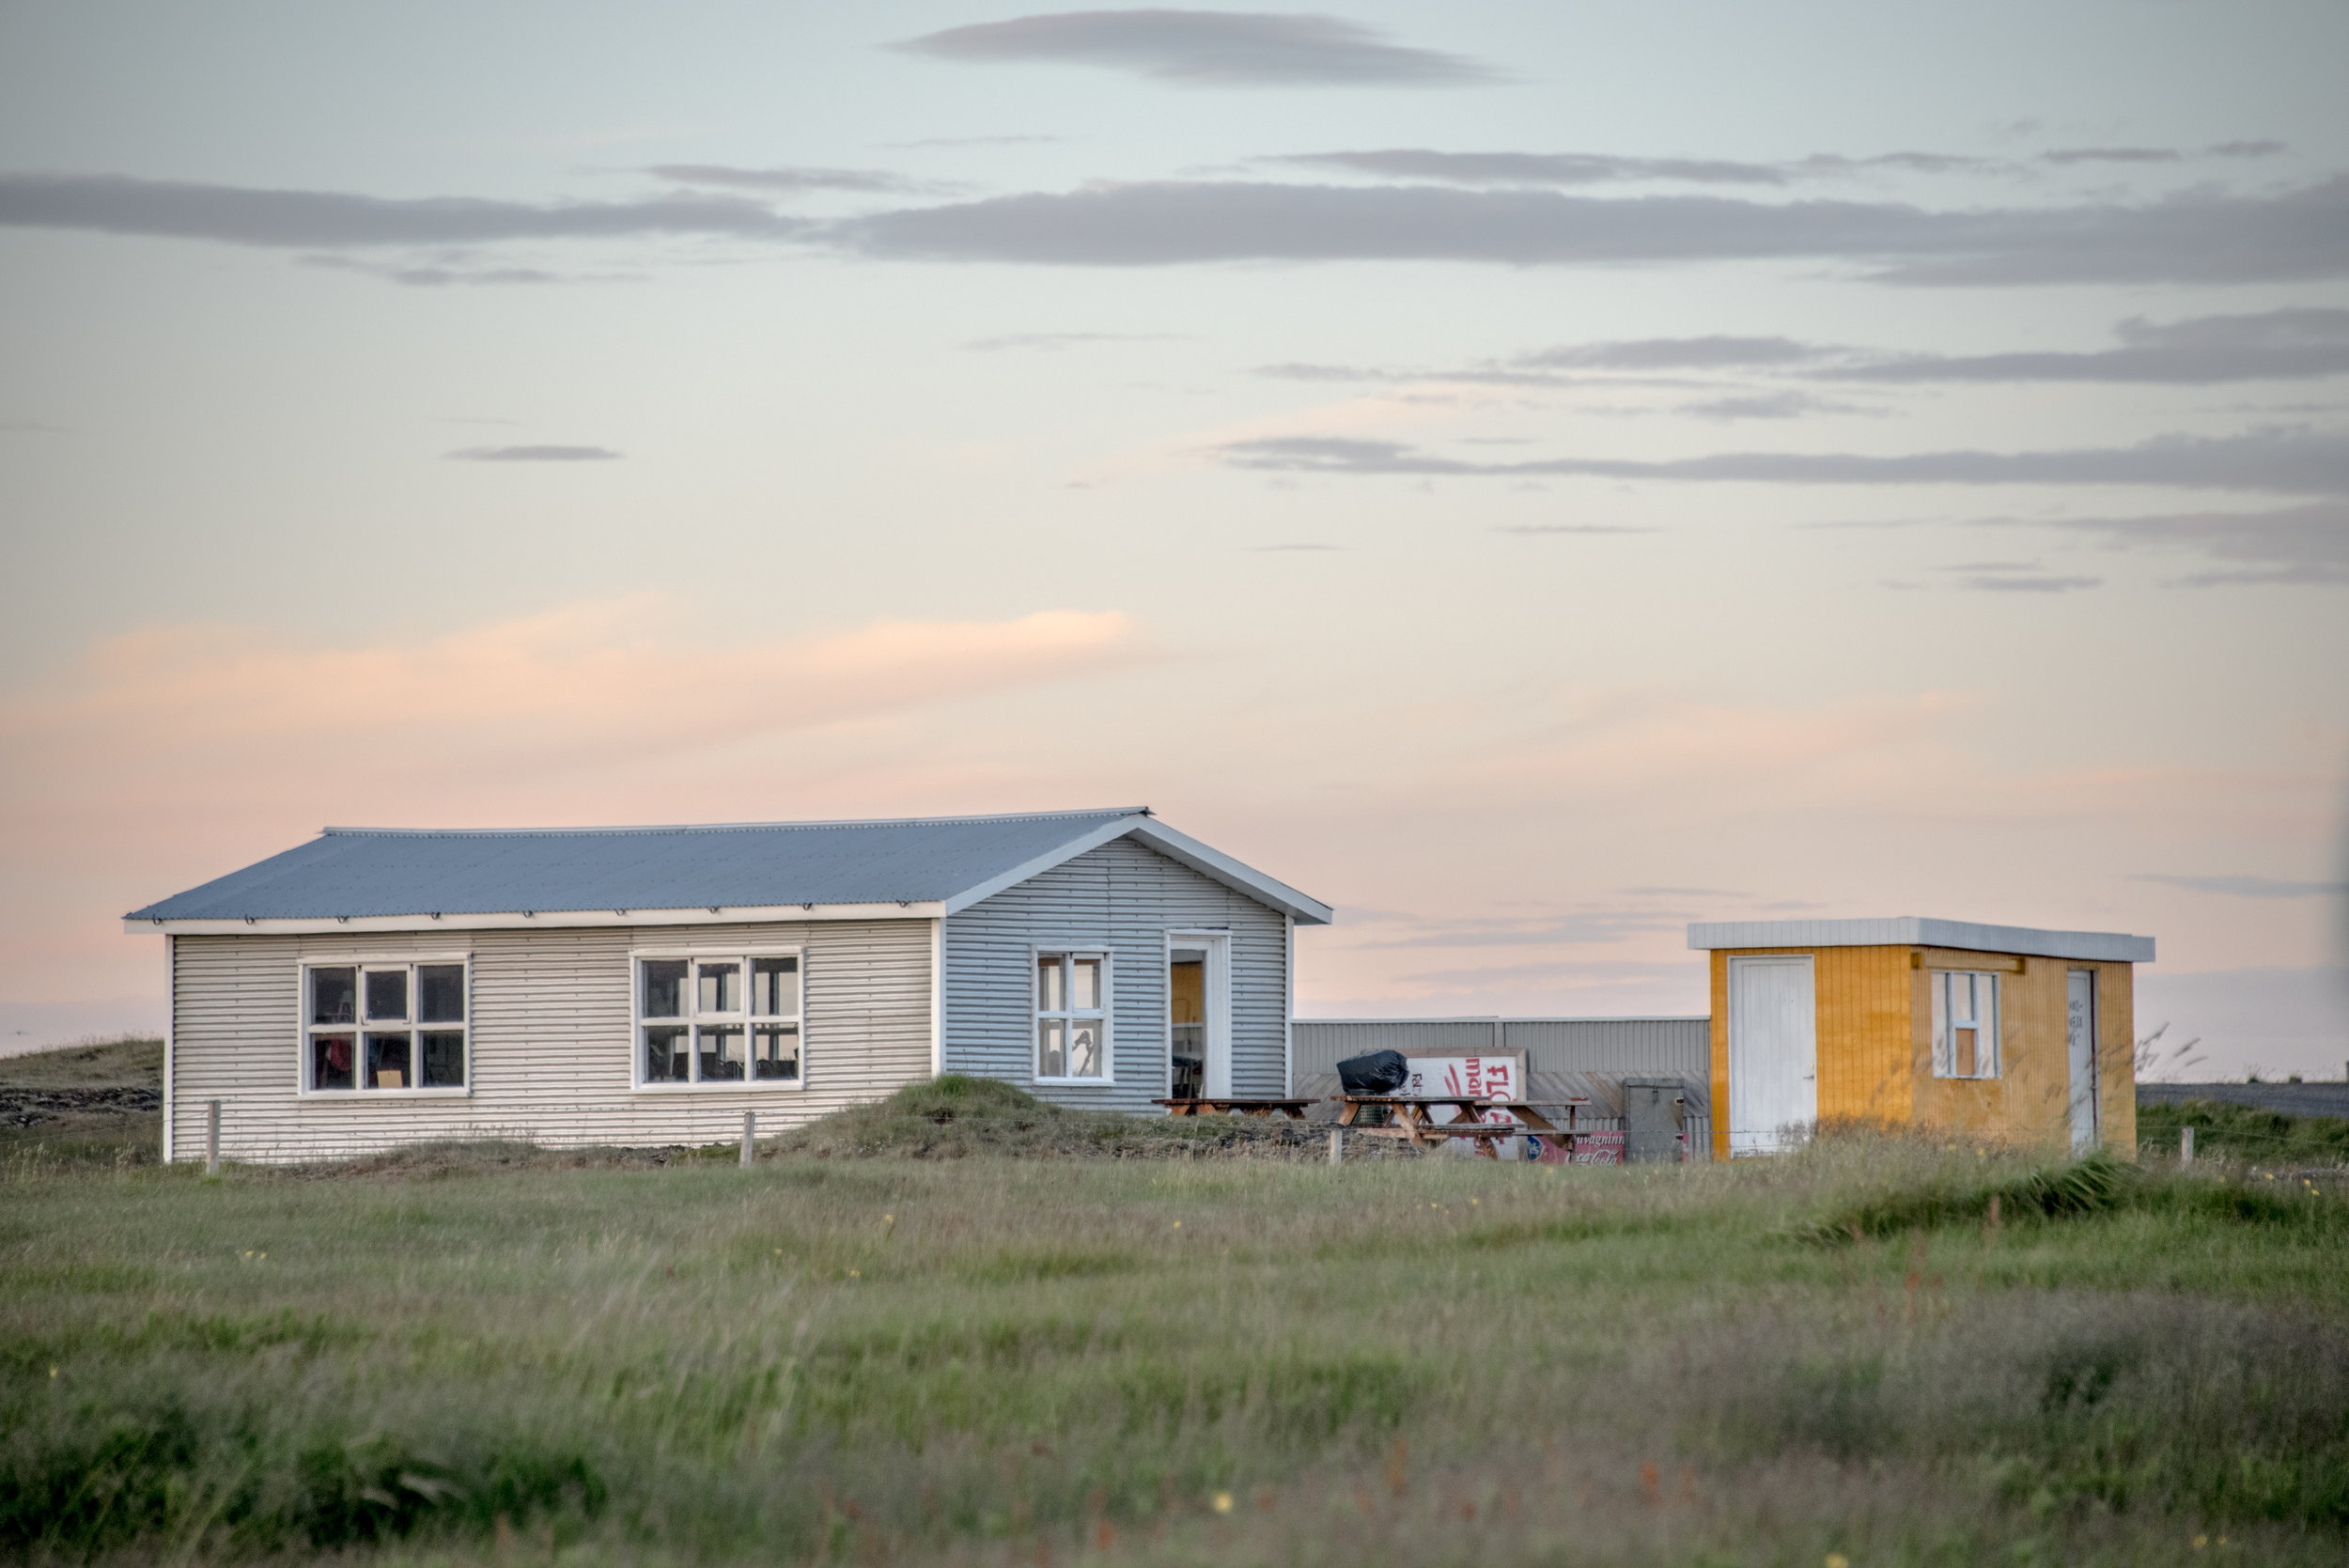 A free campsite along Route 427, less than a day's ride from Keflavik Airport.